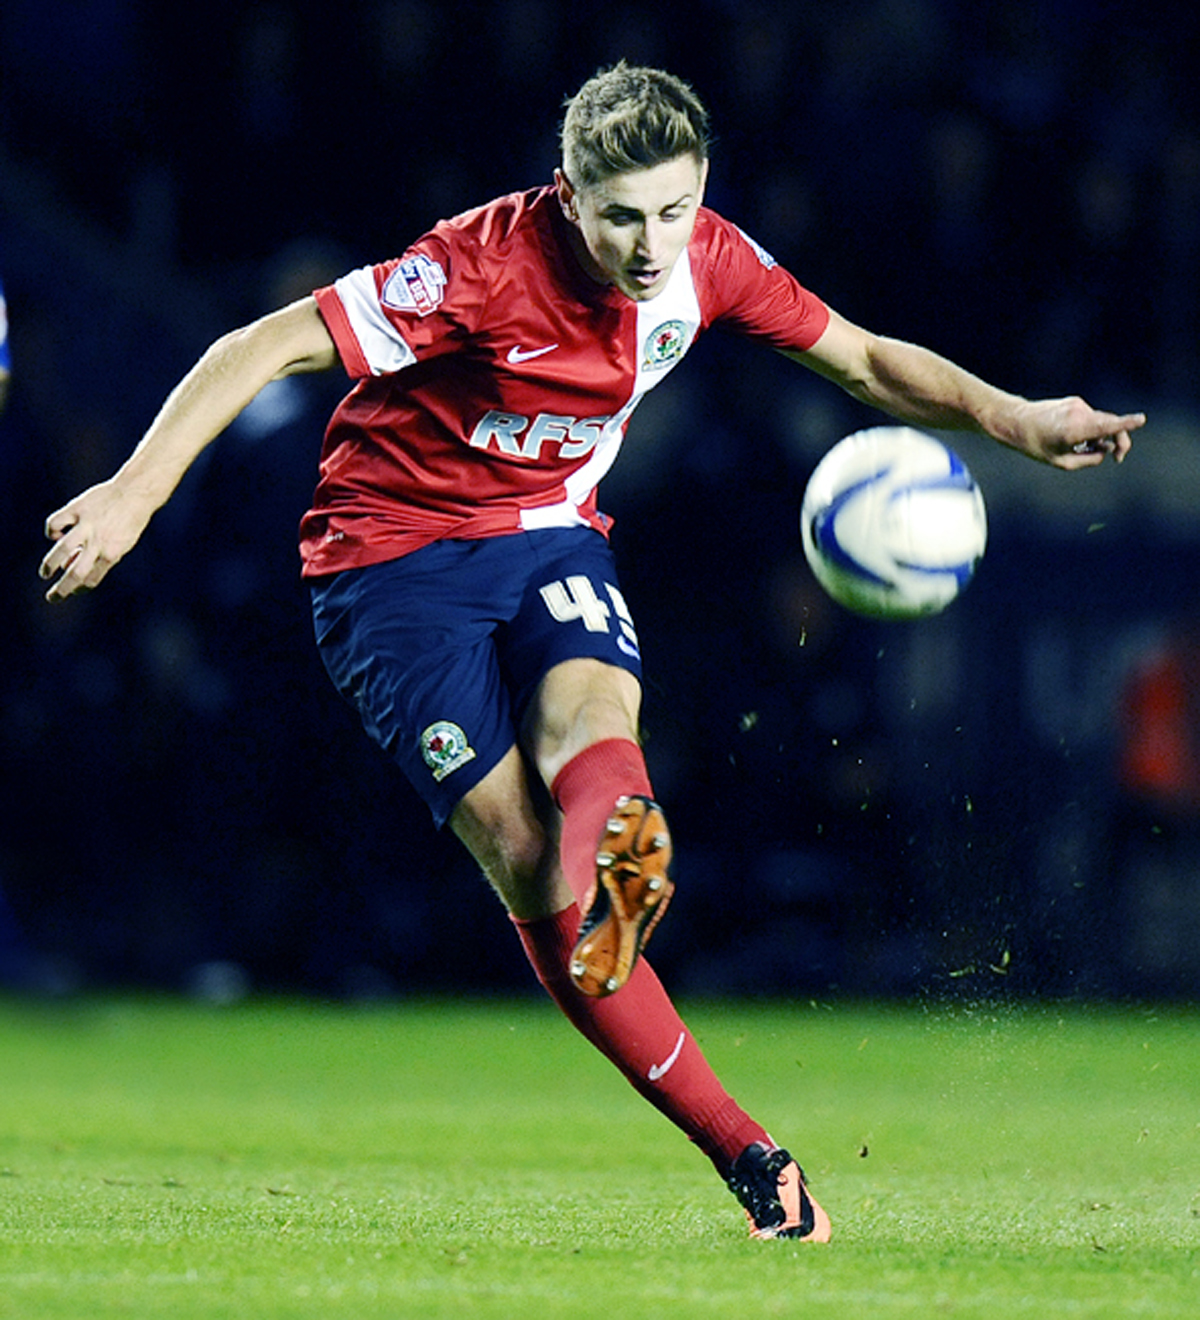 Blackburn Rovers midfielder Tom Cairney